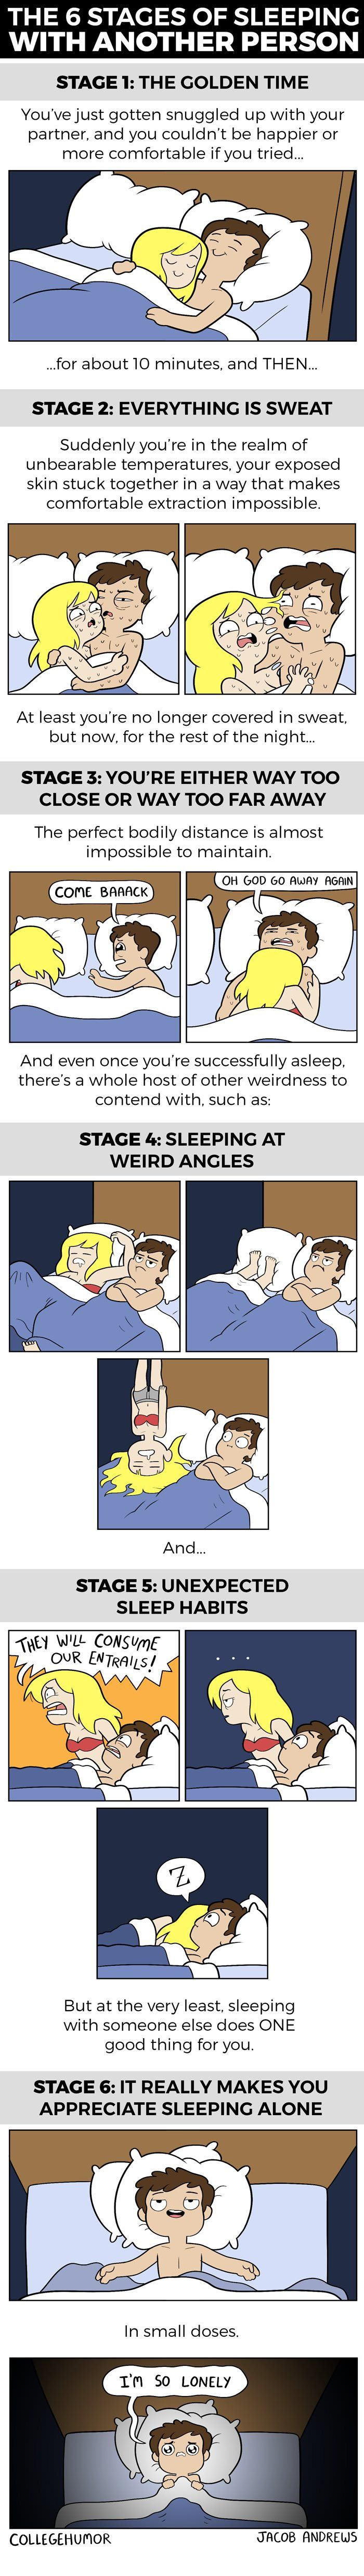 6 stages of sleeping with another person